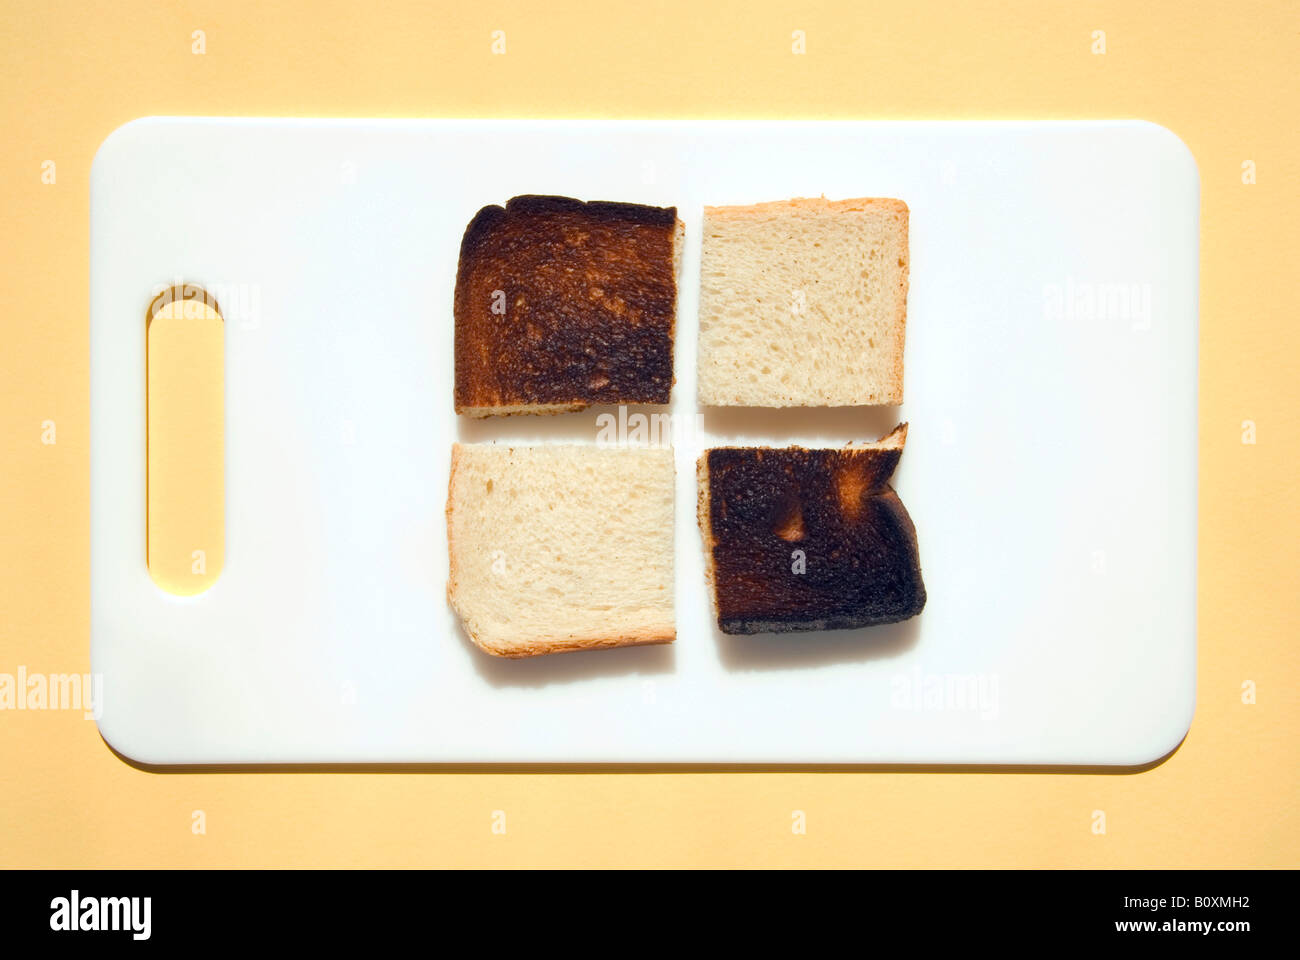 Sliced burnt toast and toast on breakfast plate, elevated view - Stock Image